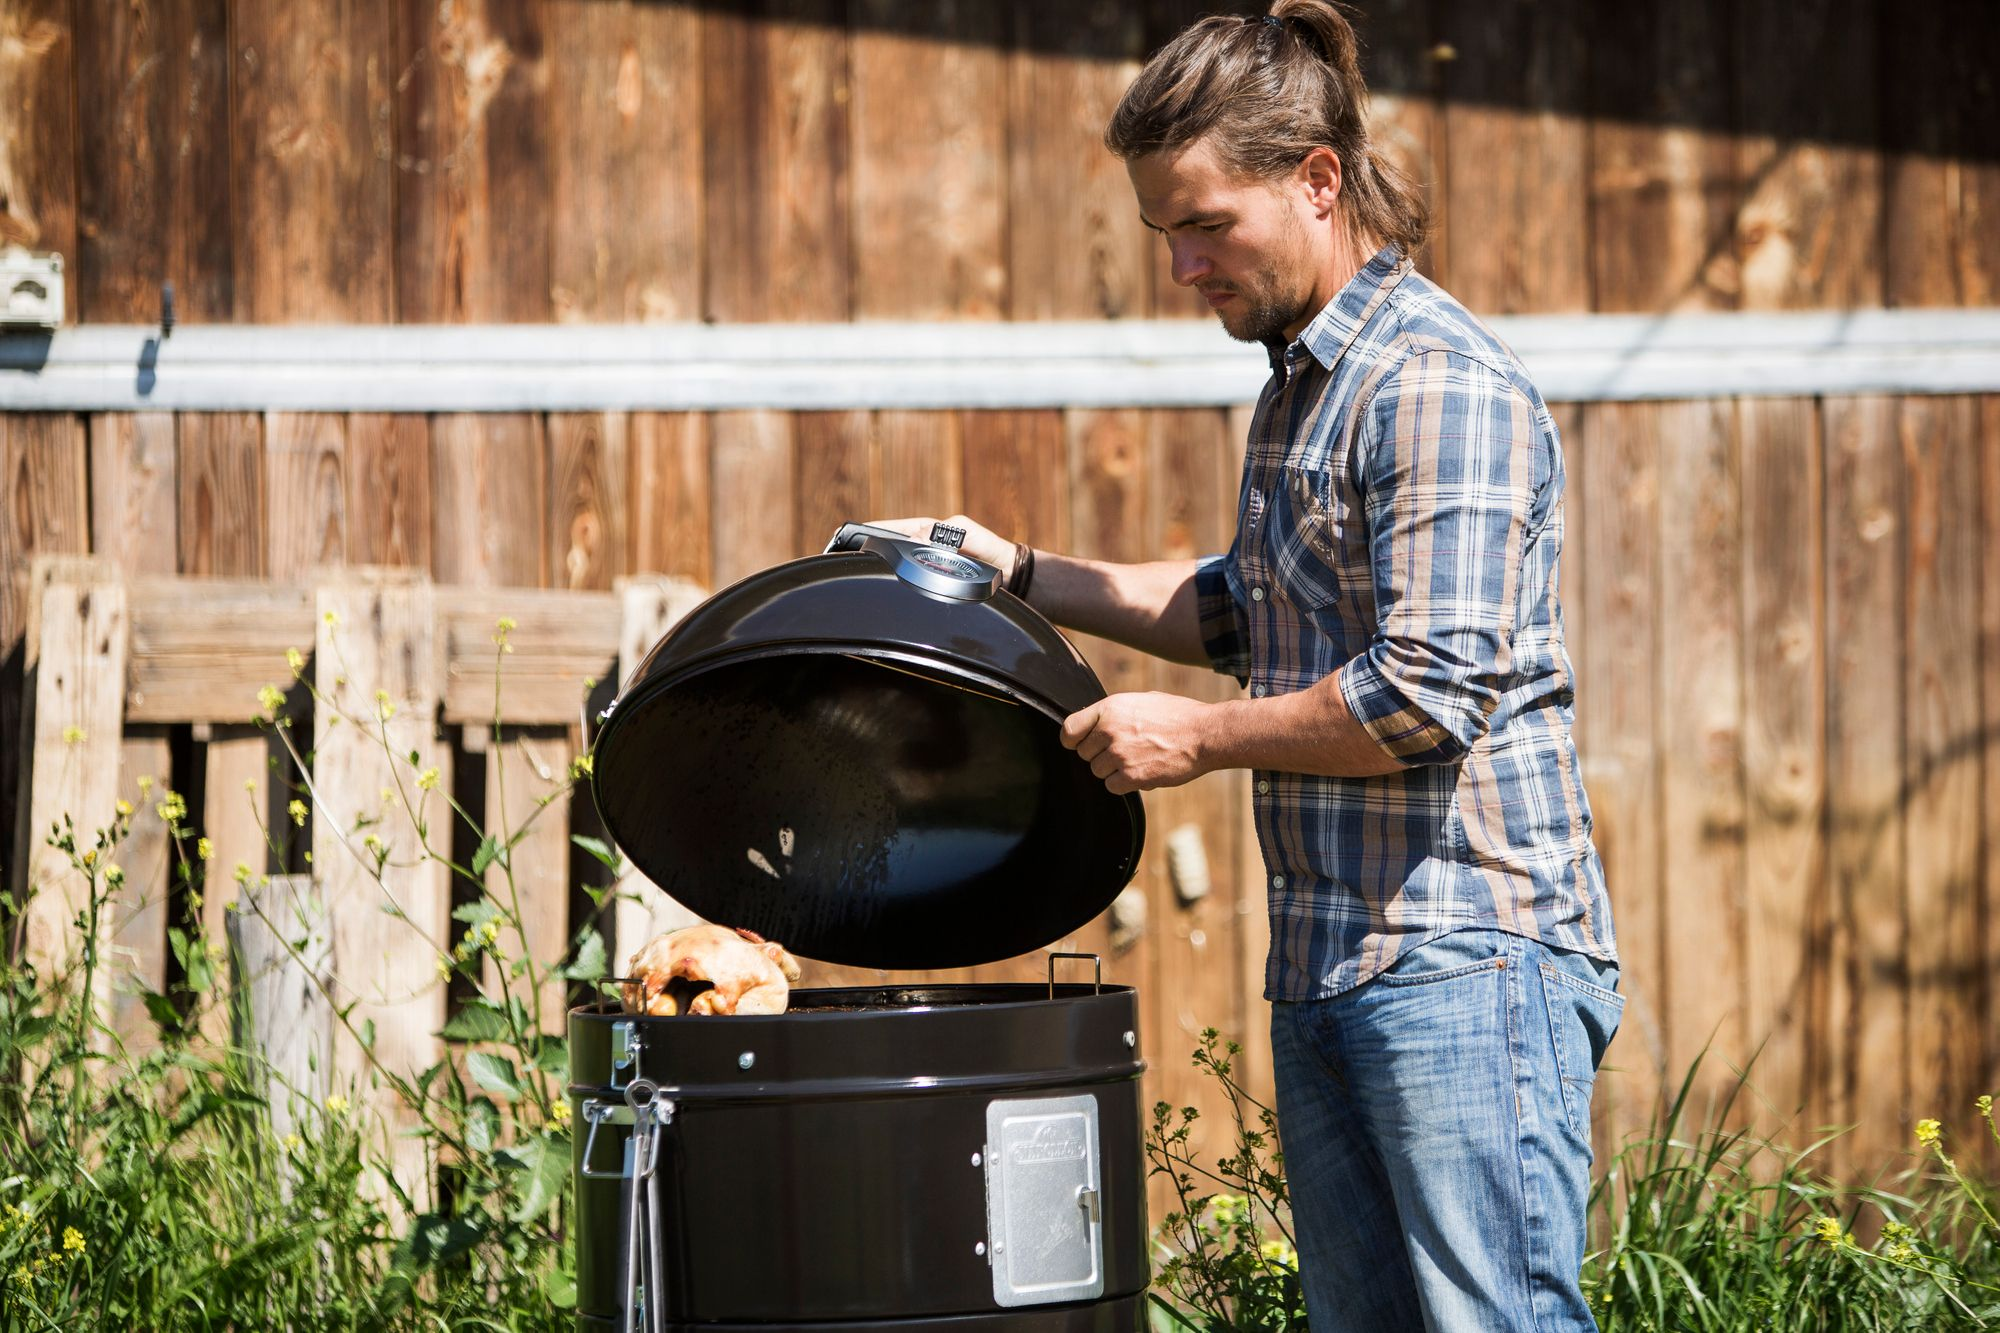 No grilling enthusiast's garden is complete without the